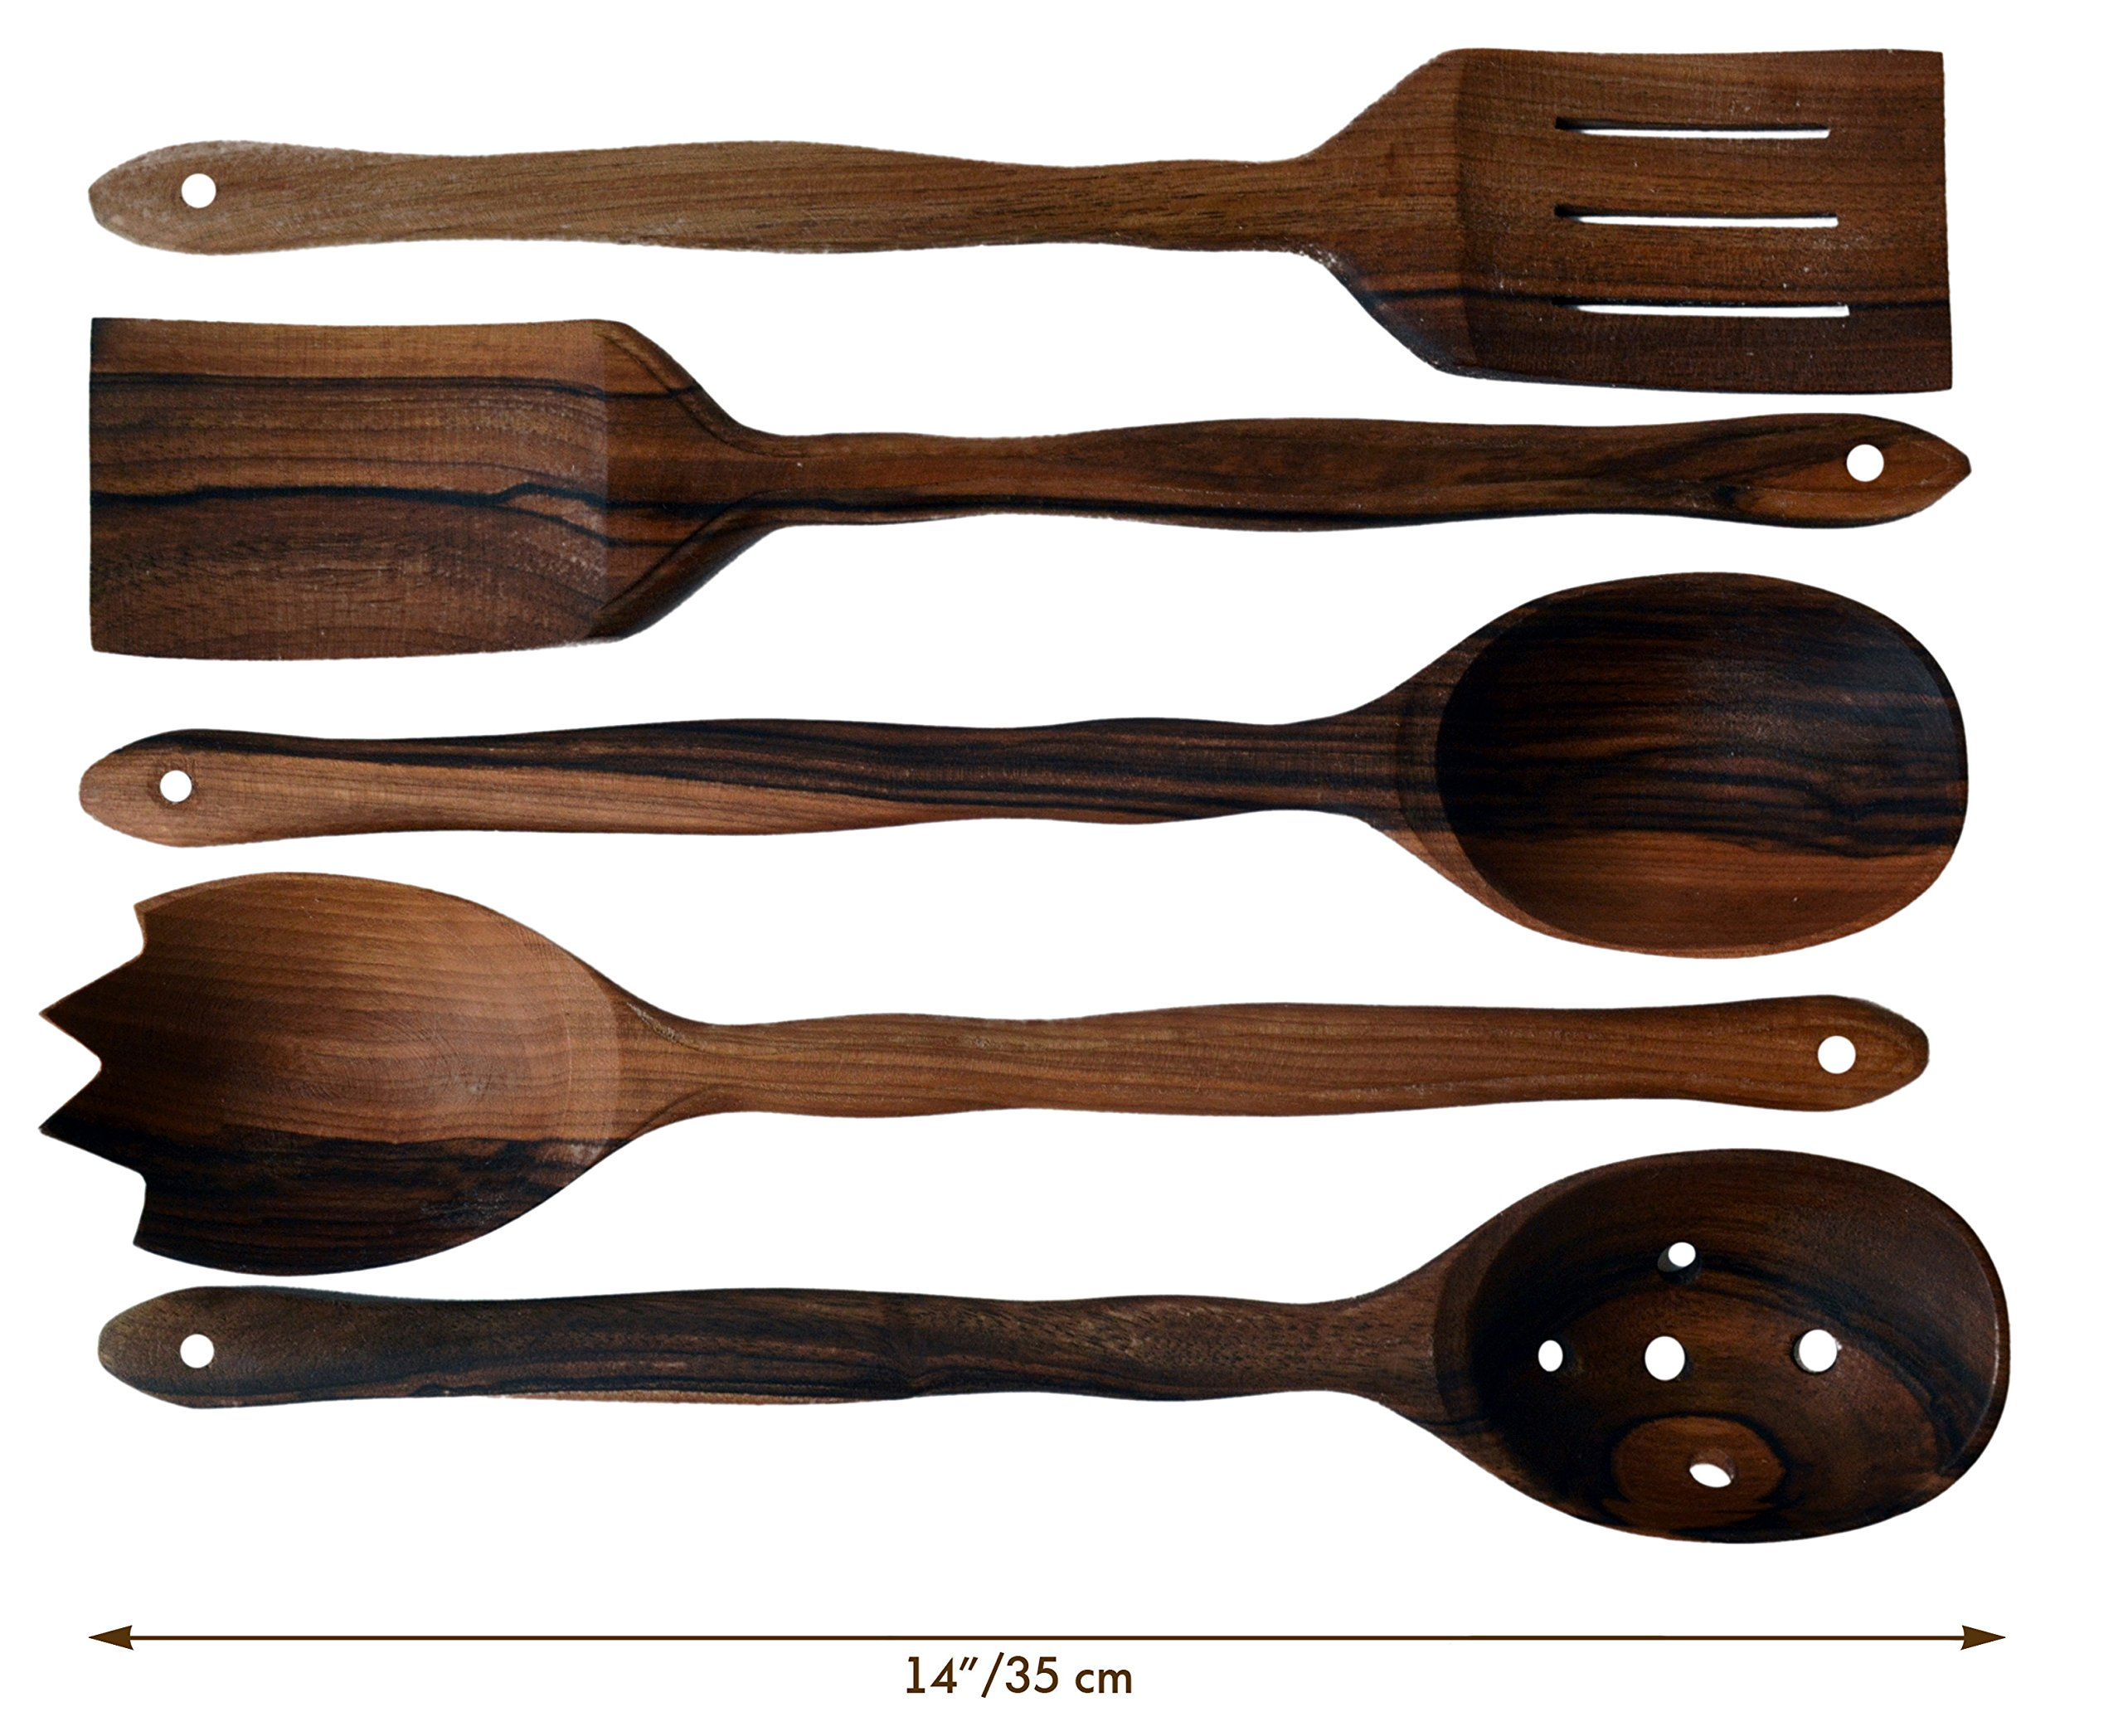 MyFancyCraft Handmade Utensil Set. Wooden Cute Kitchen Utensils Set 14''/35 cm. Walnut Wood Kitchen Supplies & Utensils Big Set of 5 by MyFancyCraft (Image #8)